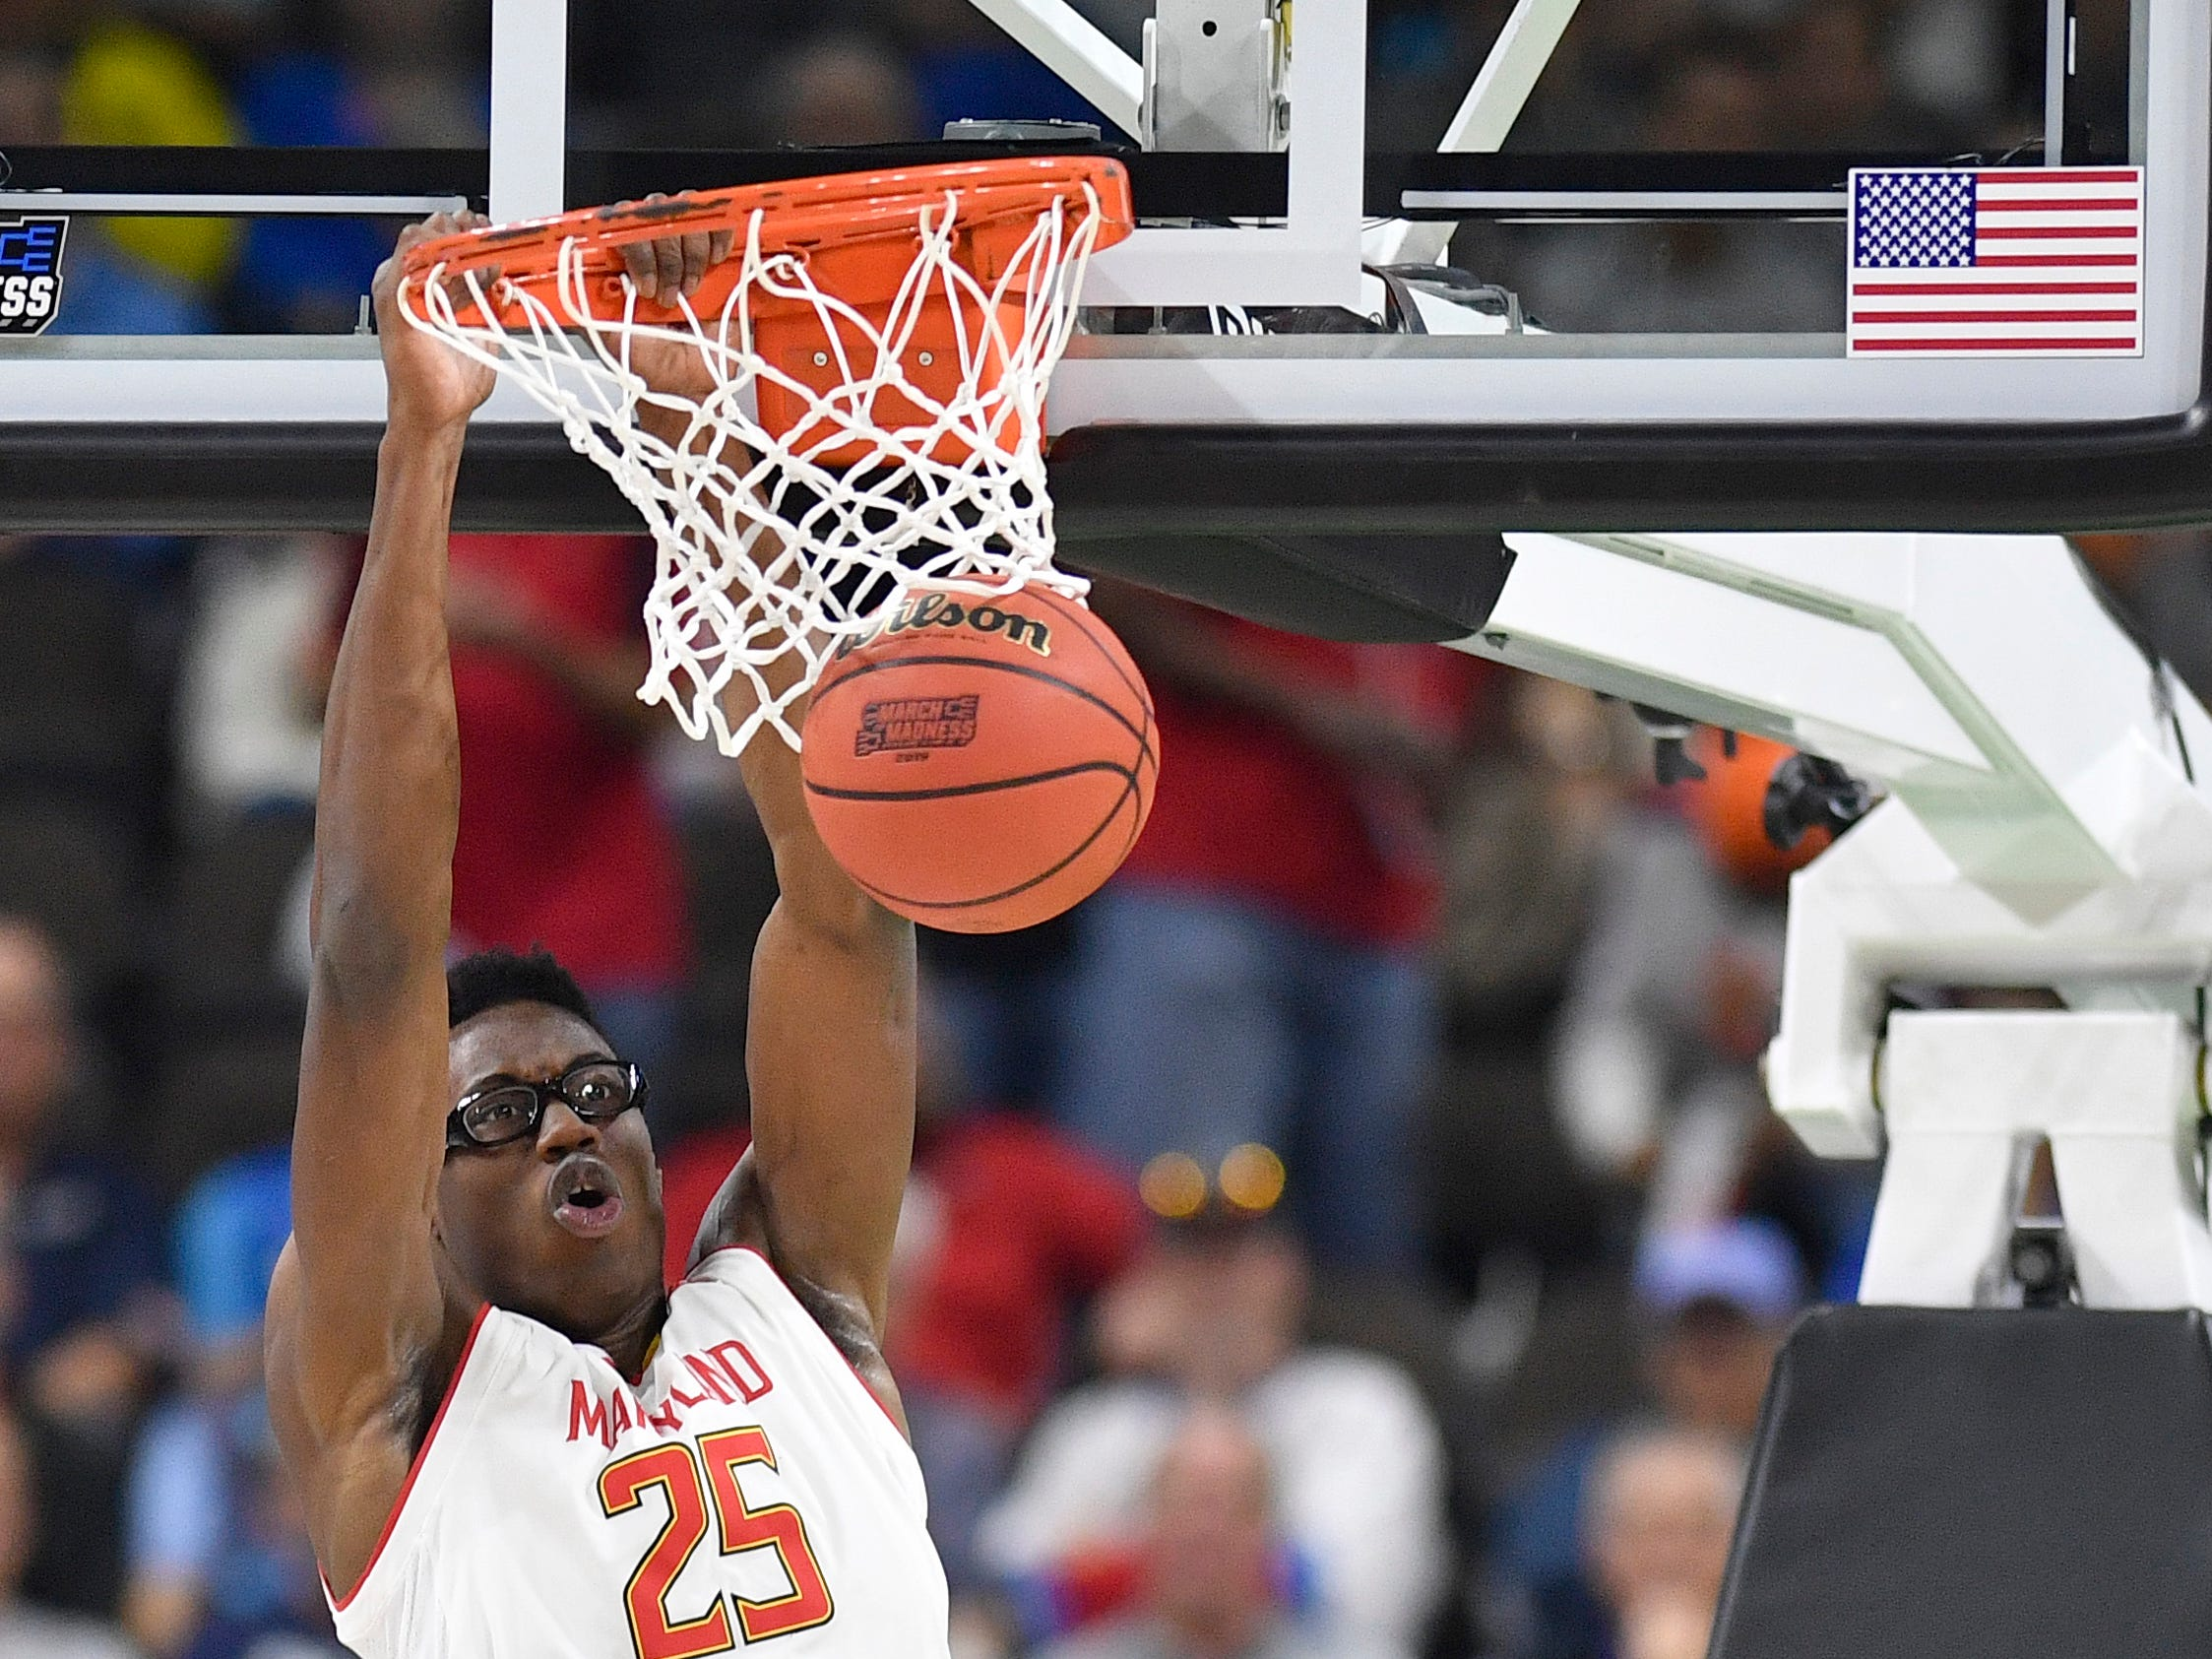 Maryland forward Jalen Smith (25) dunks during the first half of the first-round NCAA college basketball tournament game against Belmont at VyStar Veterans Memorial Arena in Jacksonville, Fla., Thursday, March 21, 2019.